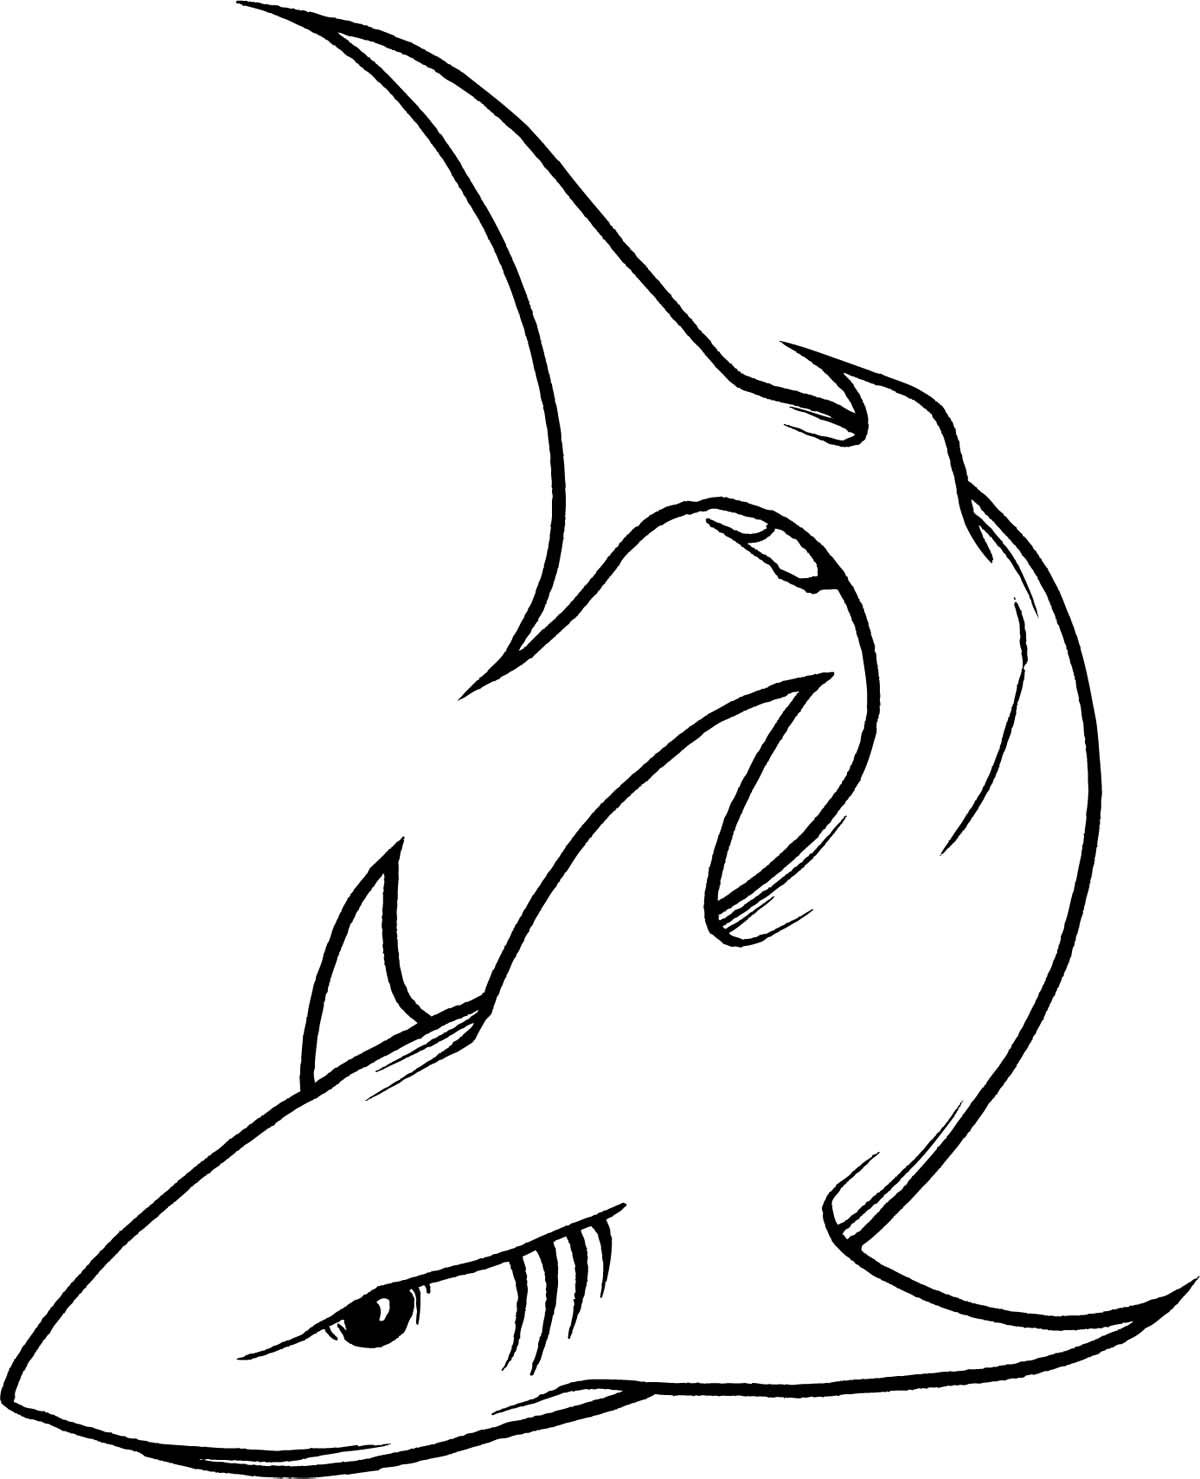 Shark Clipart Best Favorite Sites Shark Tattoos Shark Drawing